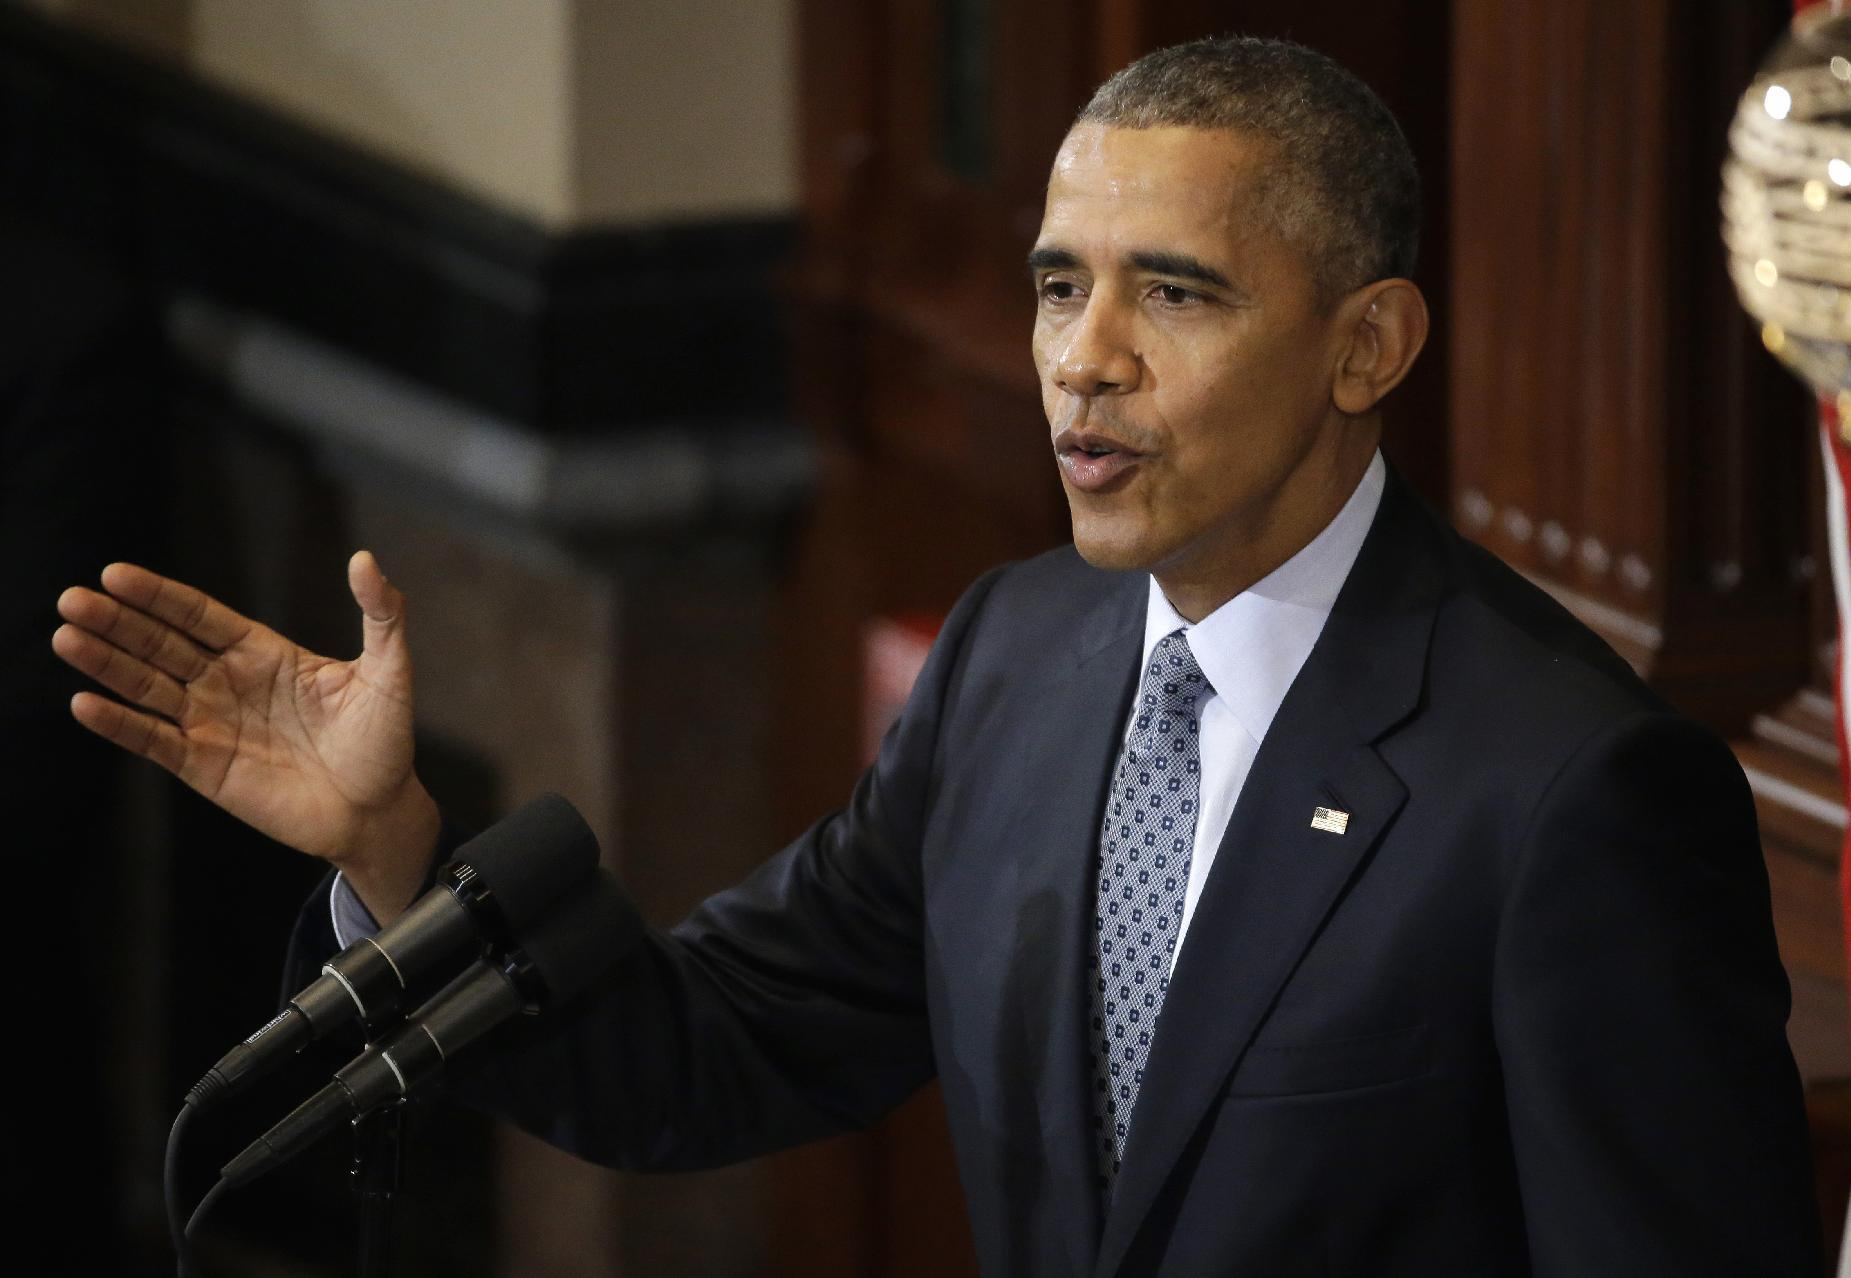 In Illinois, Obama issues an appeal for political unity